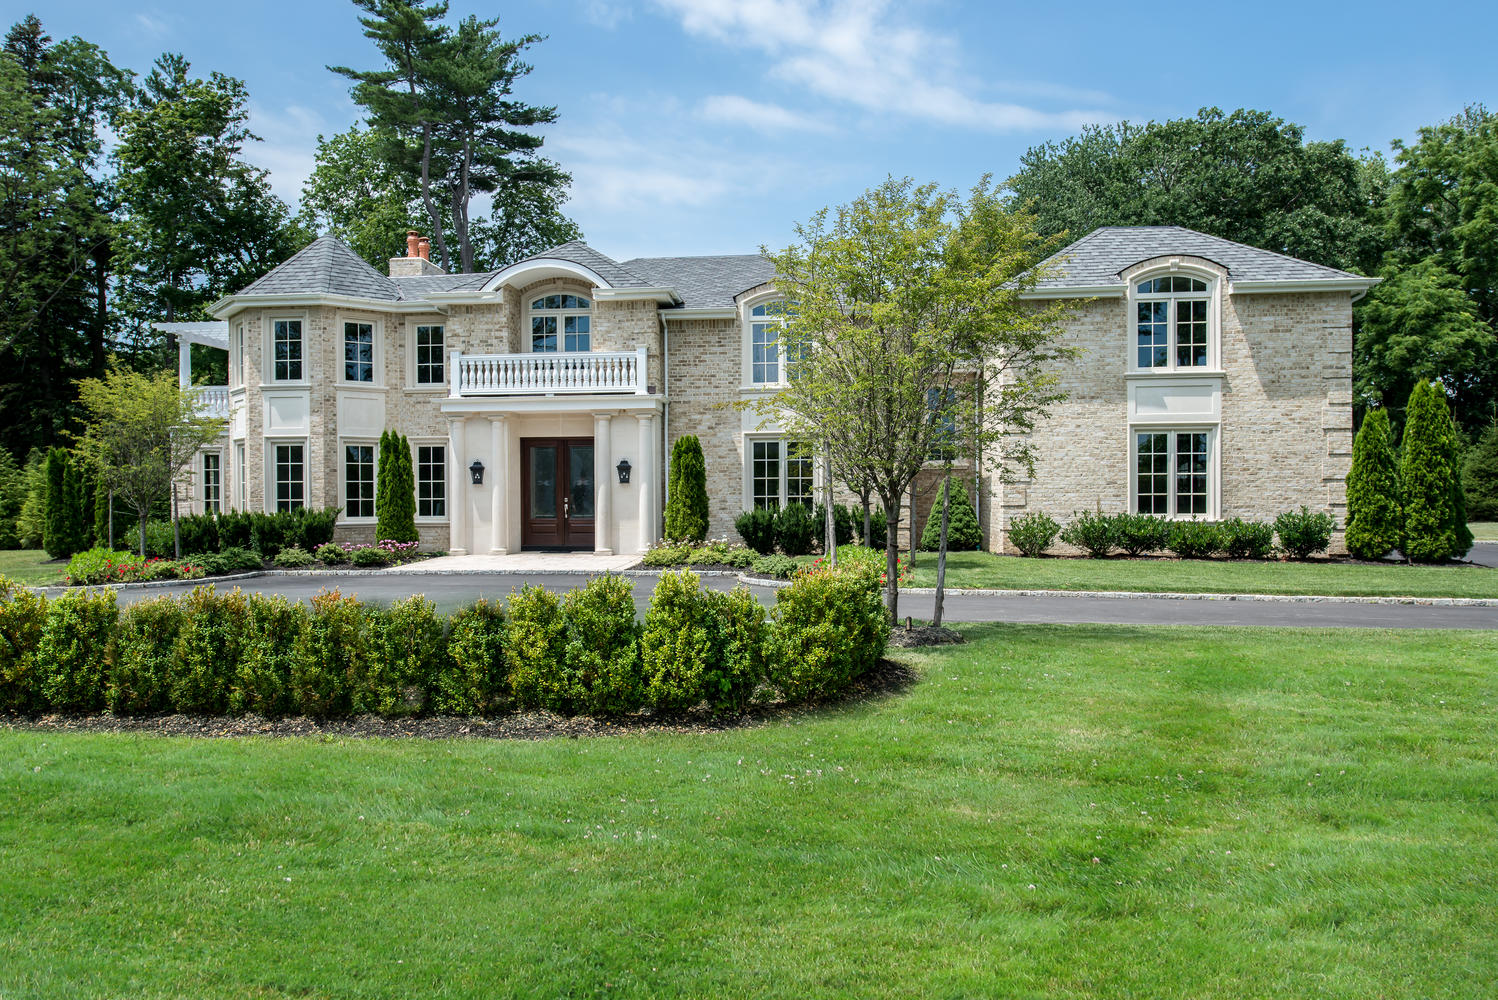 Villa per Vendita alle ore Colonial Hidden Pond Dr Old Westbury, New York, 11568 Stati Uniti